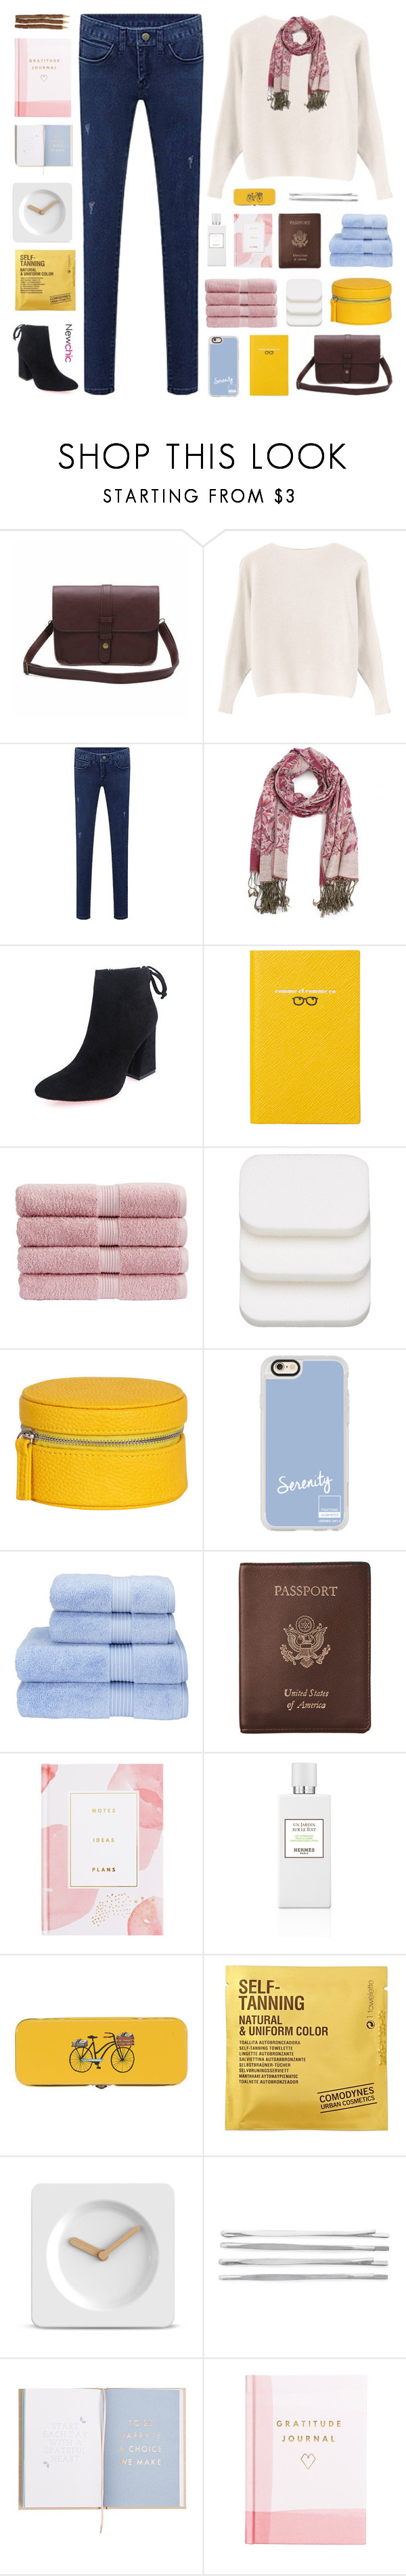 """Newchic V: BELT BAGS"" by paradiselemonade ❤ liked on Polyvore featuring Smythson, Christy, COVERGIRL, Casetify, Royce Leather, Thrive, Danica Studio, Comodynes, LEFF Amsterdam and Cara"